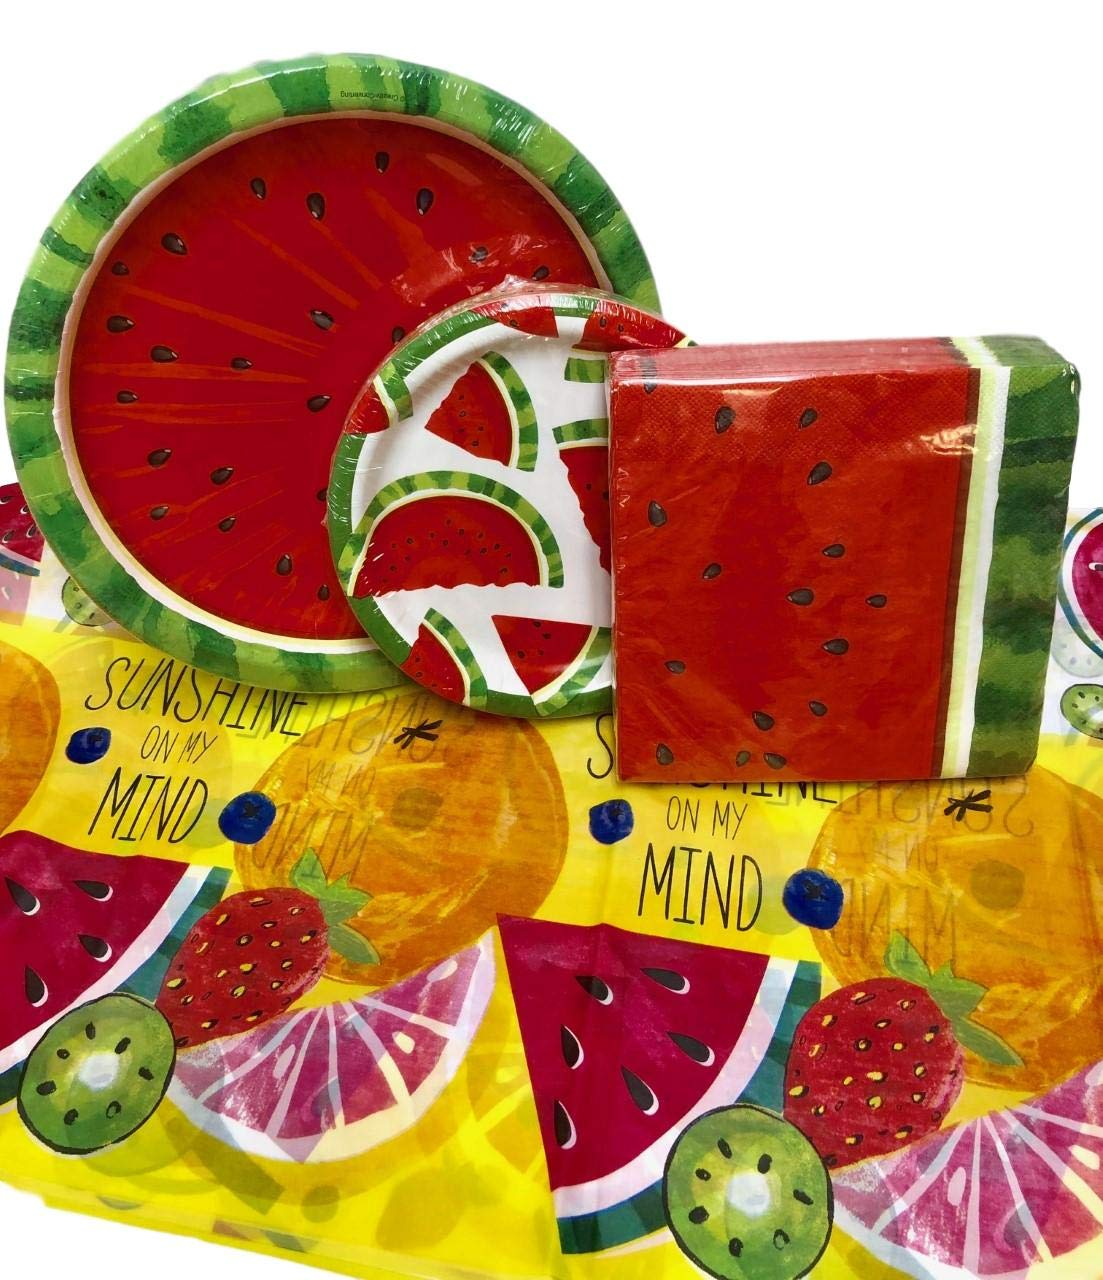 105 Piece Watermelon Picnic Party Supplies Disposable Paper Plates, Napkins, Tablecloth Spring, Summer, Memorial July Bundle (Yellow)